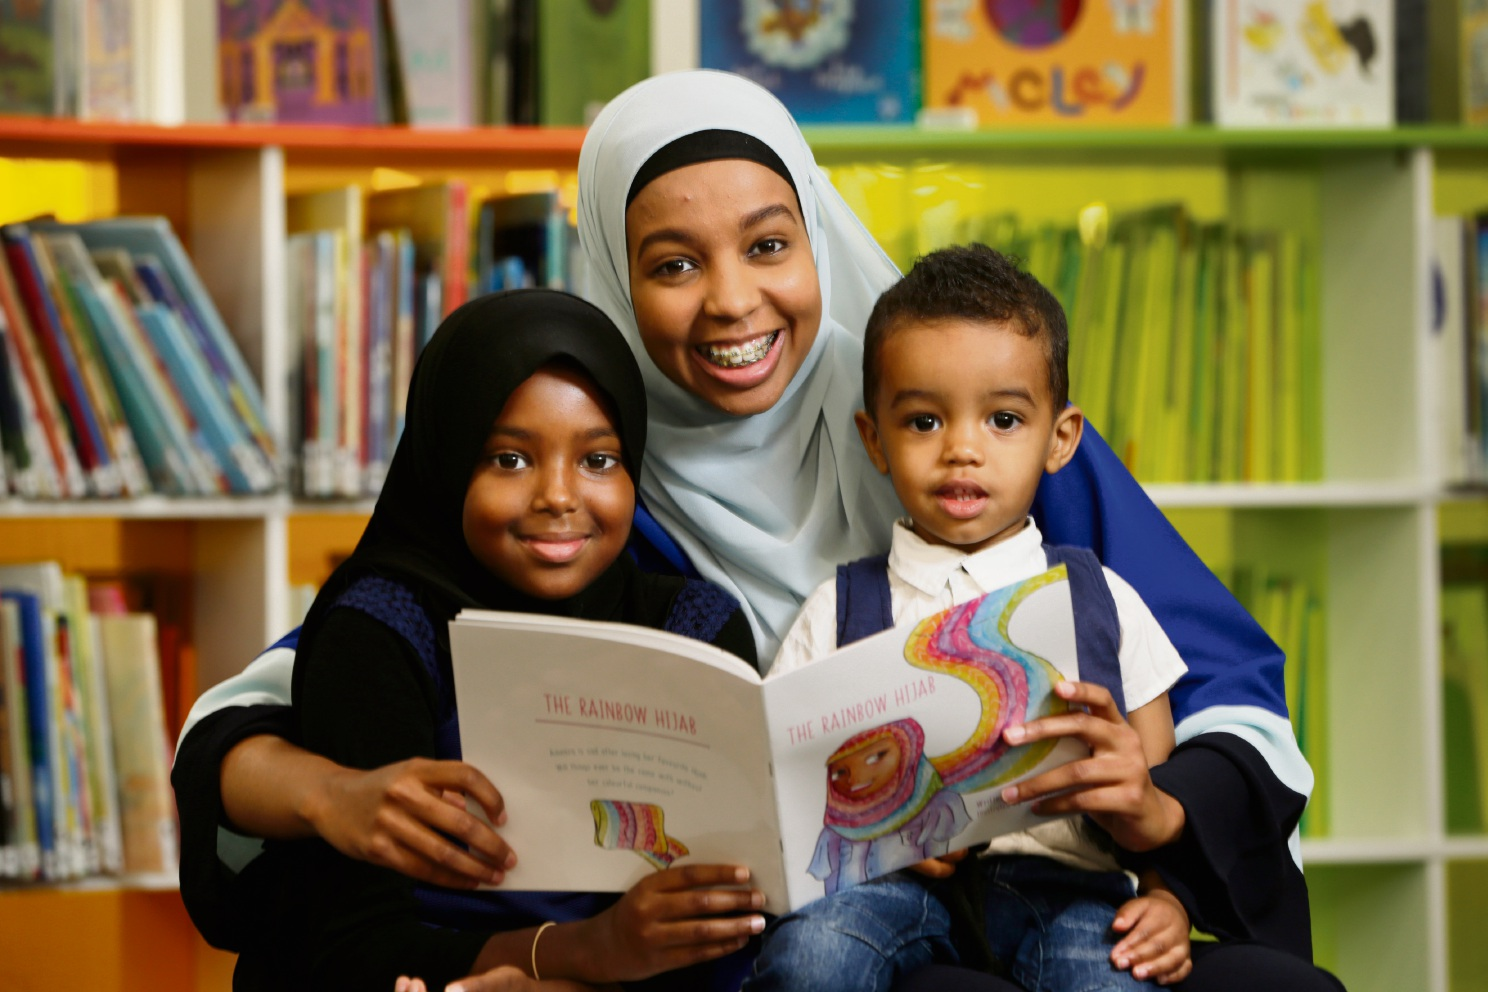 Maryan Abdiwohab (10), Amran Abdi and Layth Mukhtar (2).  Picture: Andrew Ritchie d467802